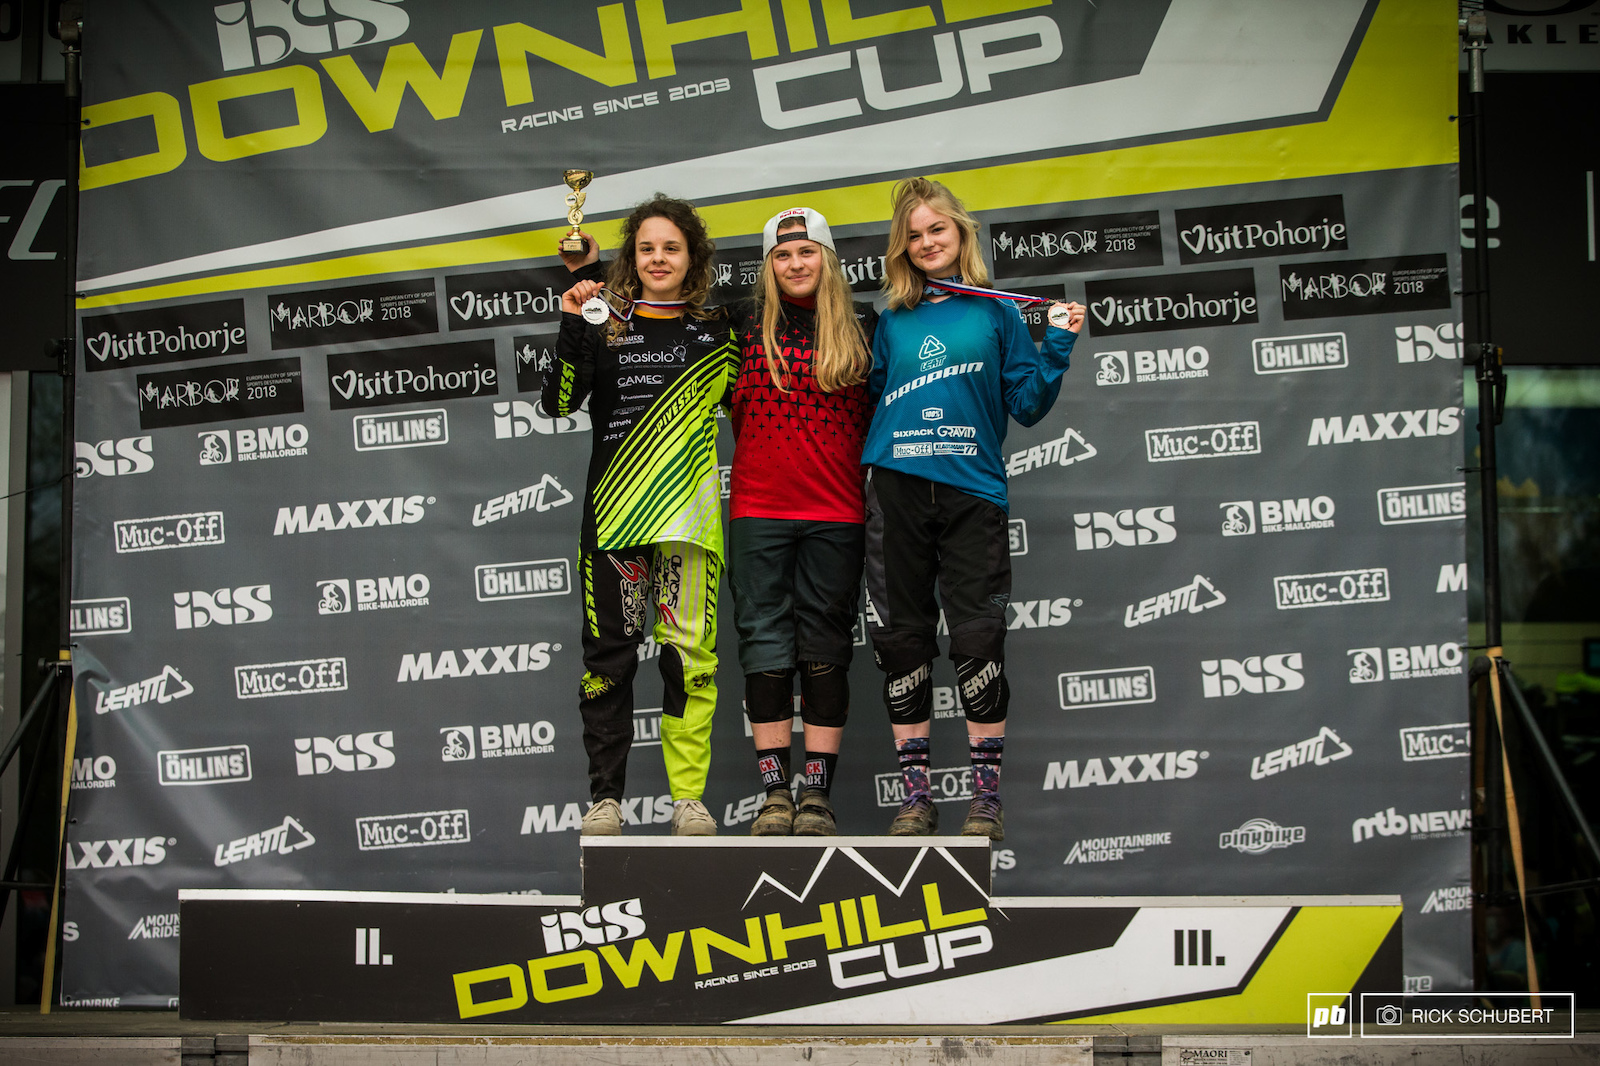 Podium U19 female with Lisa Gava Vali Hoell and Ottilia Jones